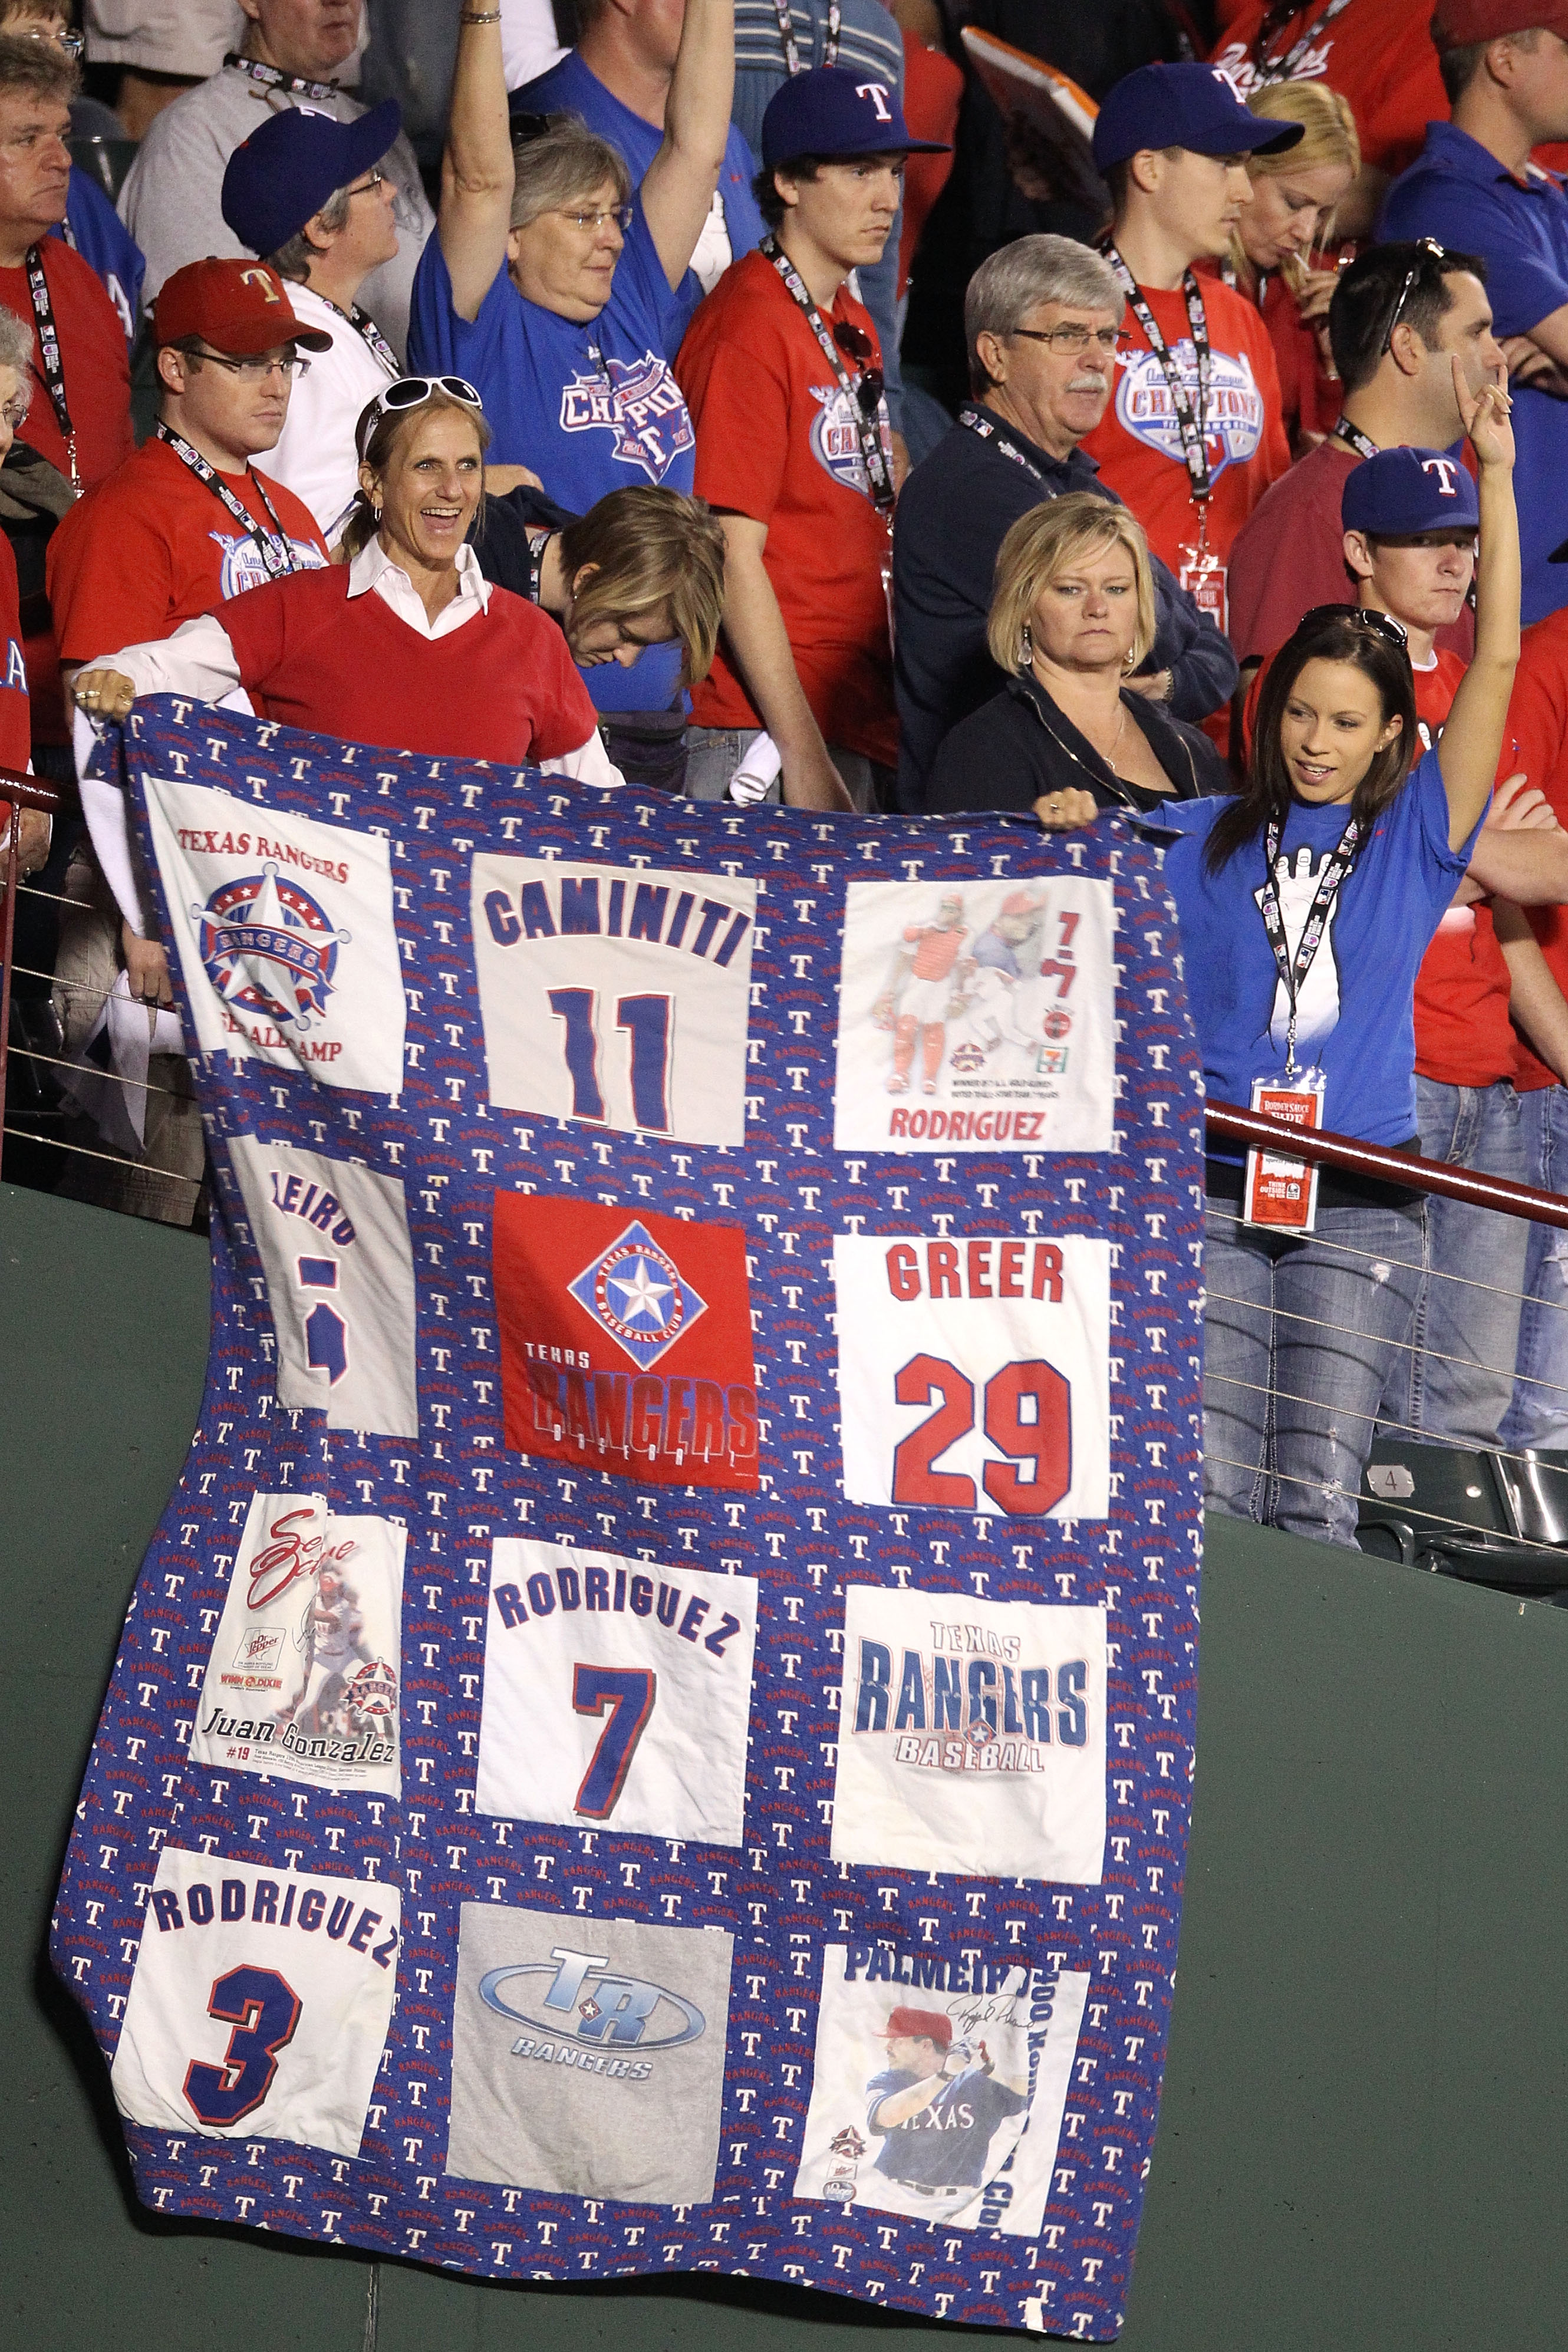 ARLINGTON, TX - OCTOBER 30:  Fans of the Texas Rangers celebrate with a Rangers quilt as the Rangers defeat the San Francisco Giants 4-2 in Game Three of the 2010 MLB World Series at Rangers Ballpark in Arlington on October 30, 2010 in Arlington, Texas.